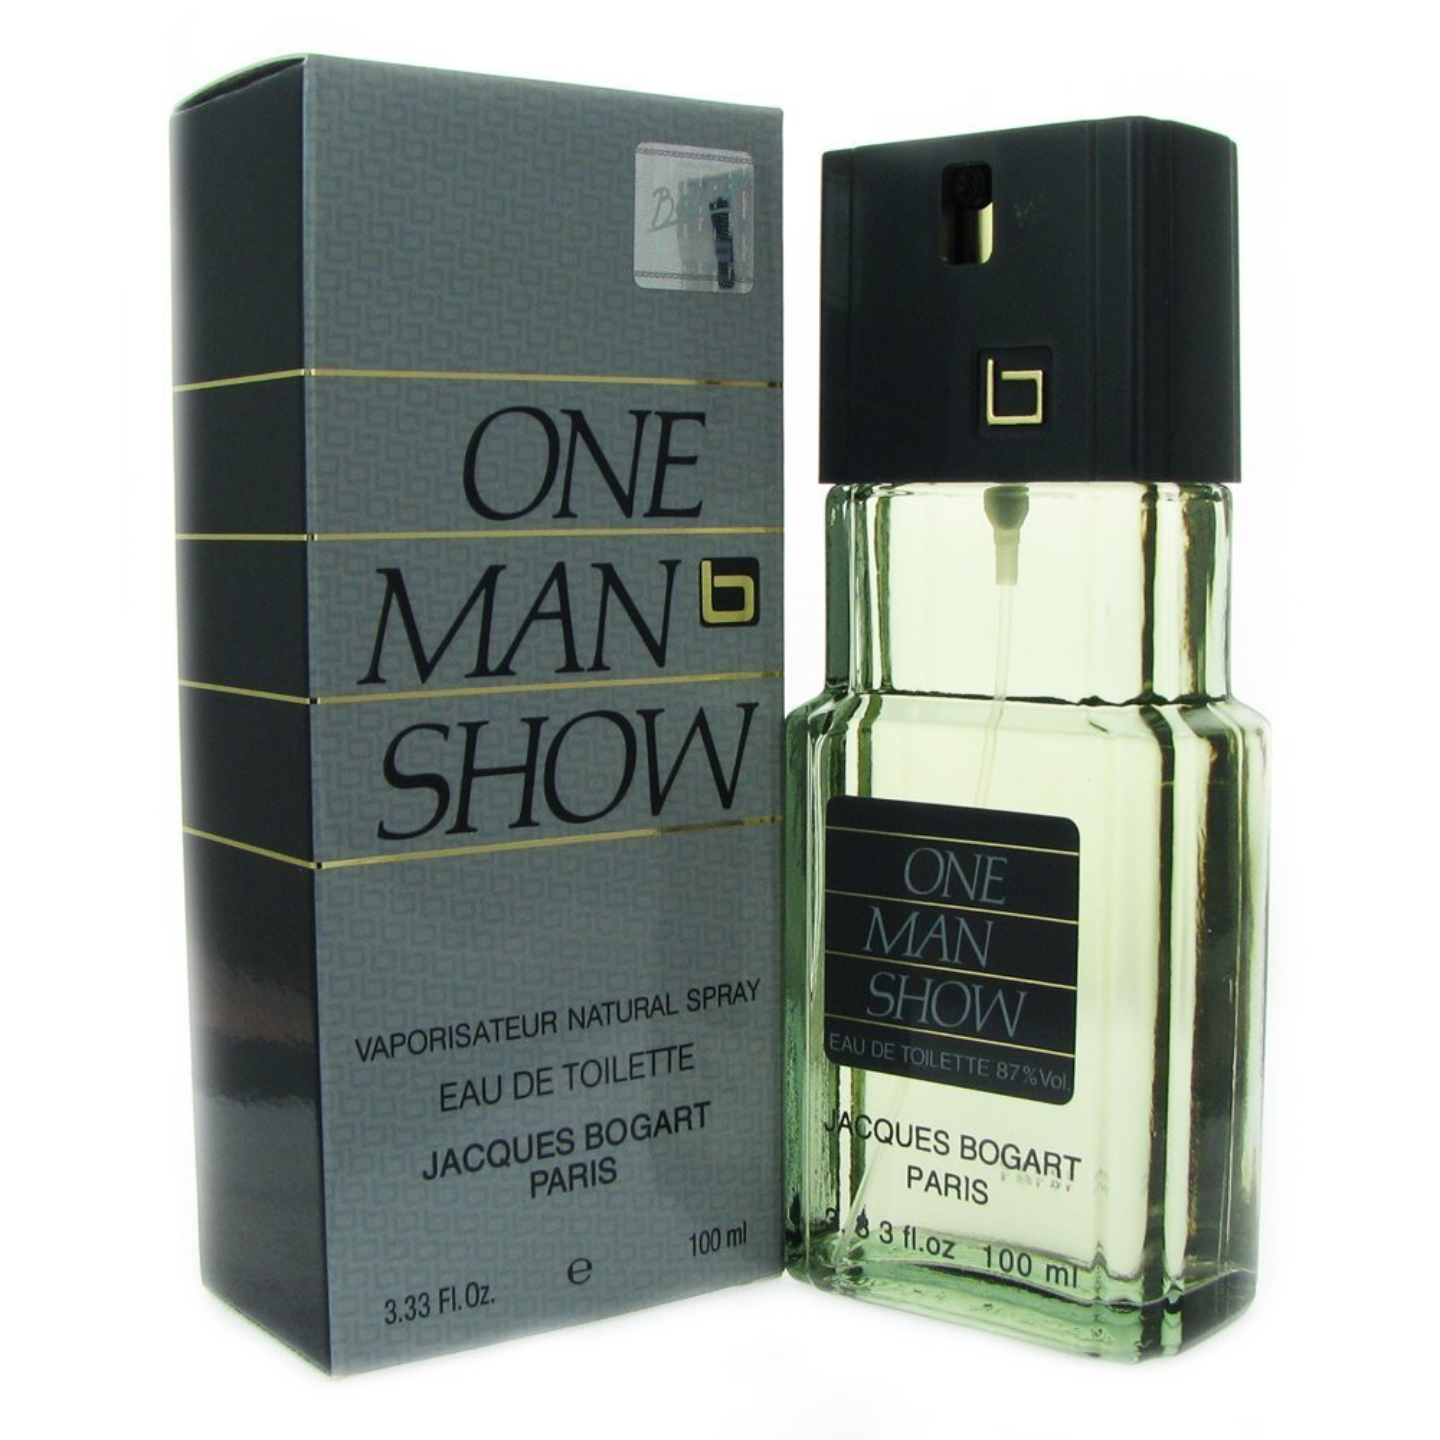 ONE MAN SHOW EDT PERFUME